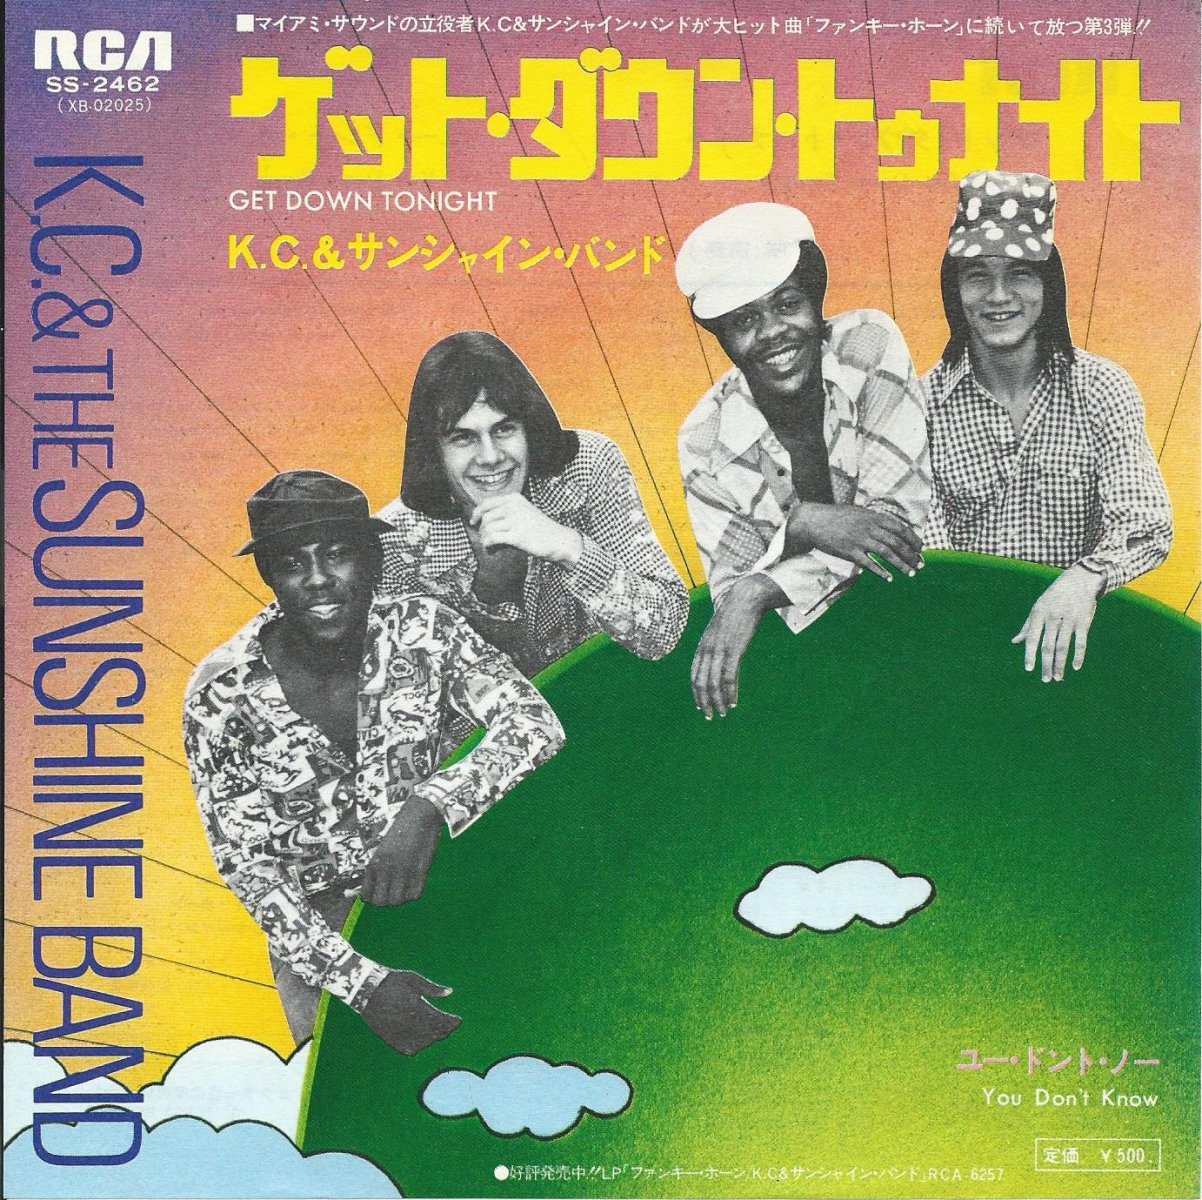 K.C.AND SUNSHINE BAND / ゲット・ダウン・トゥナイト GET DOWN TONIGHT